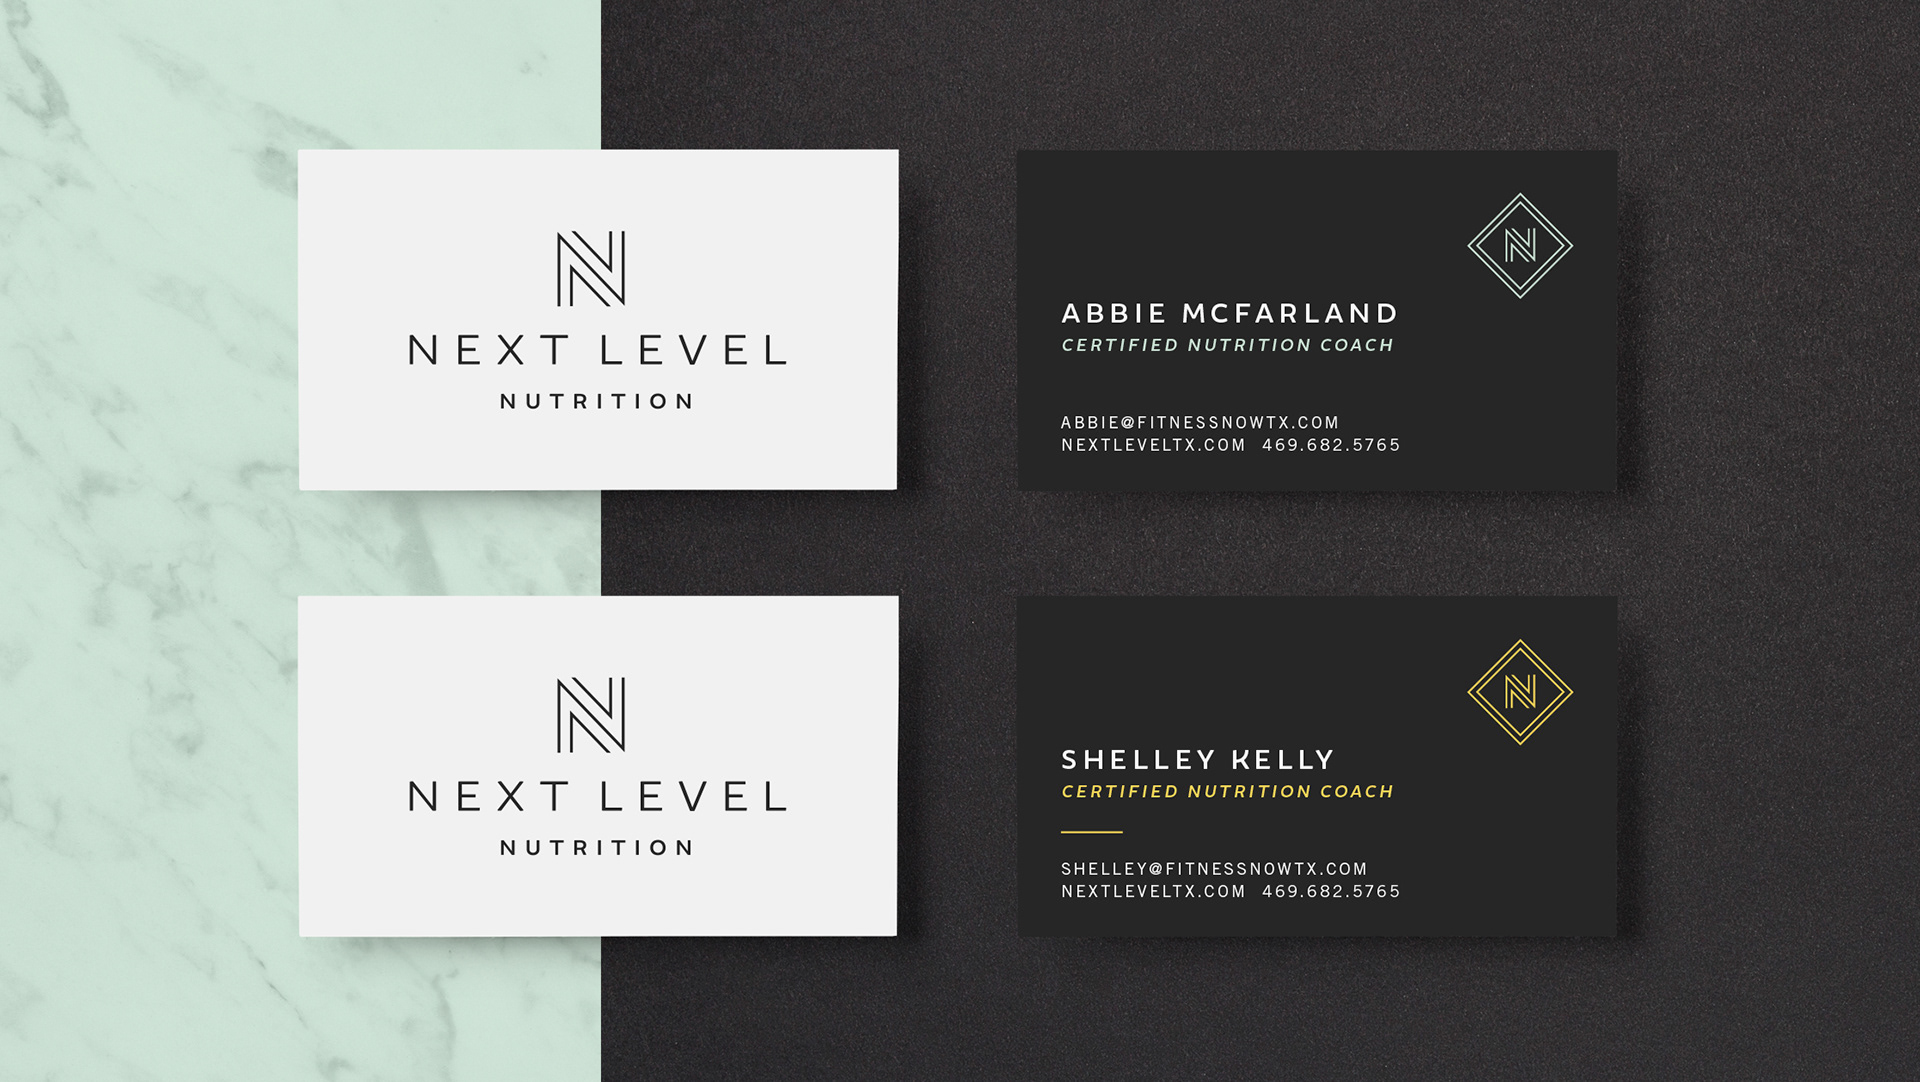 le vel business cards - Targer.golden-dragon.co